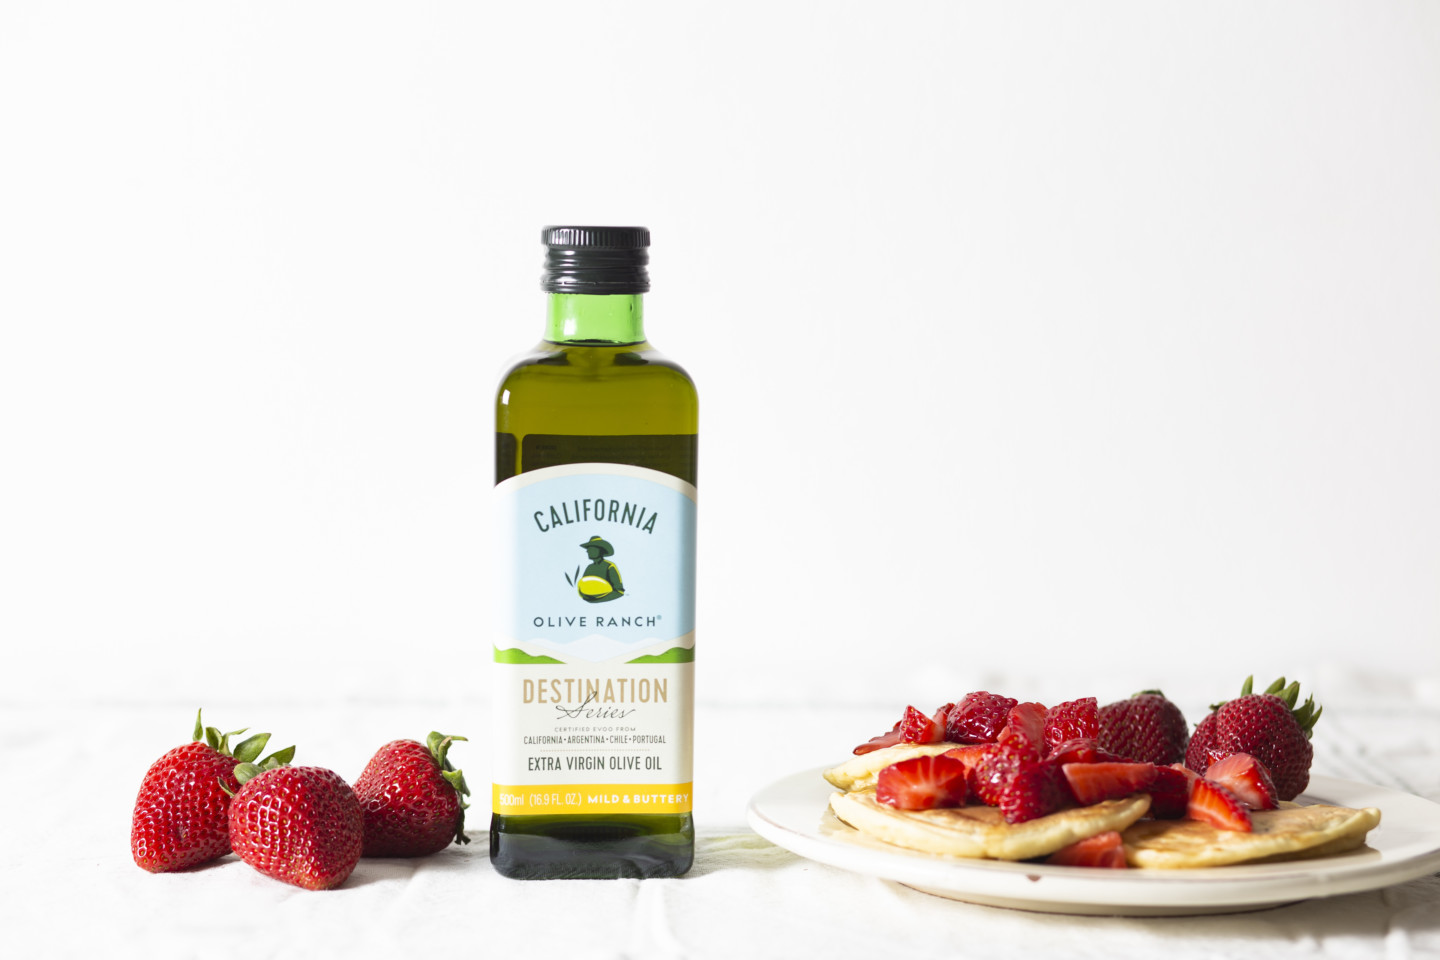 A bottle of California Olive Ranch Extra Virgin Olive Oil that's placed next to a plate of small pancakes with many strawberries on them.